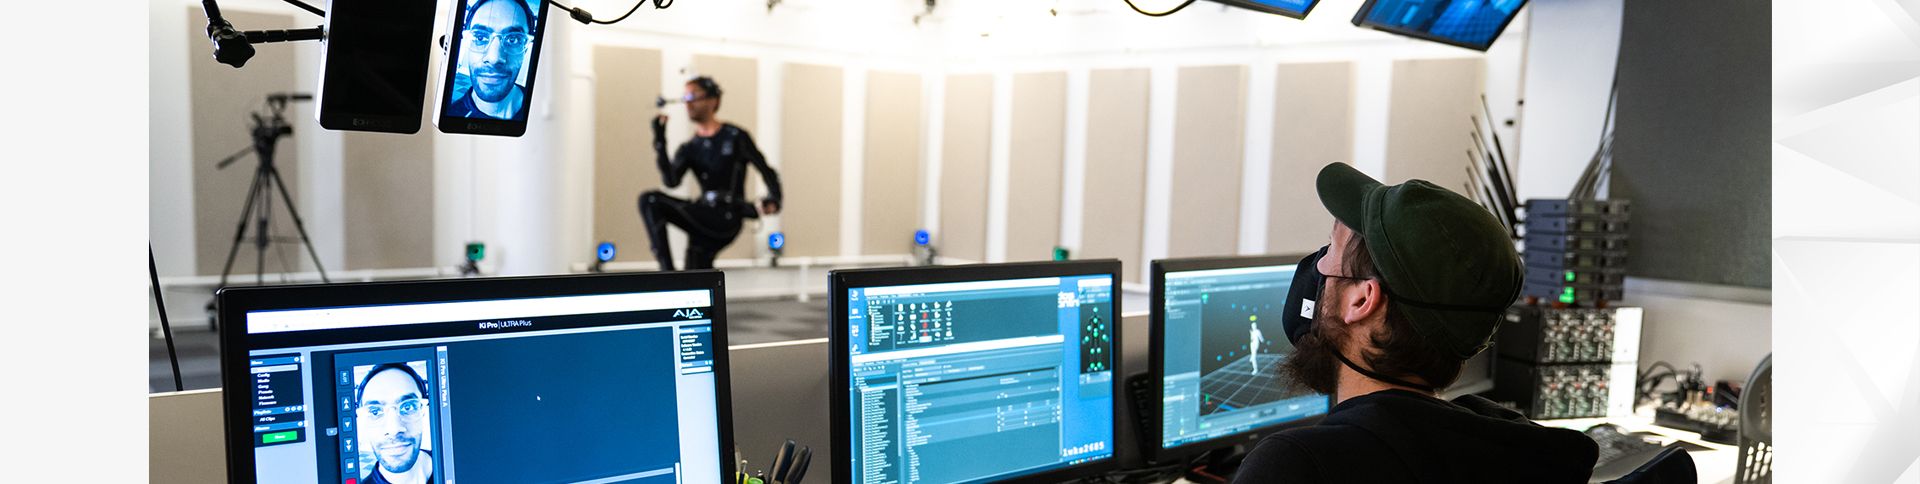 Actor doing stretches in a motion capture room, while the motion capture specialist monitors the session on his computer screen